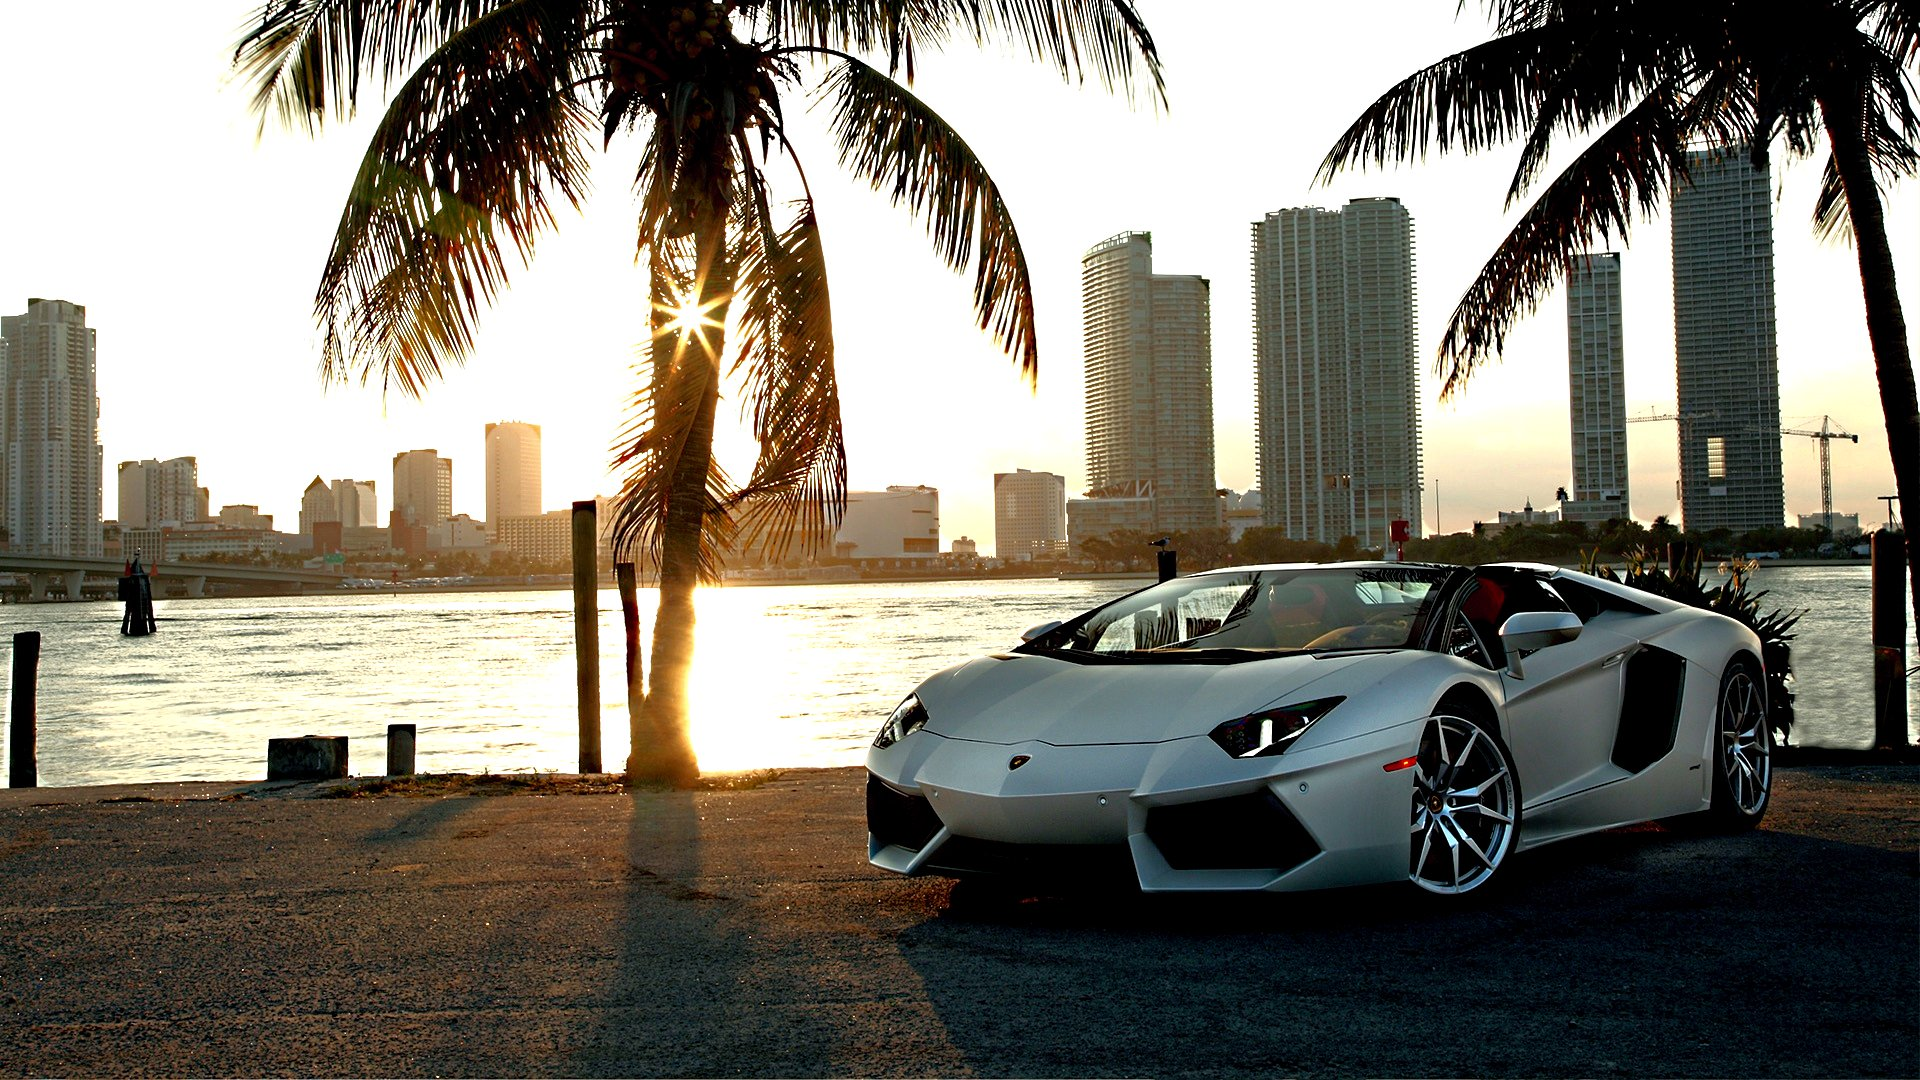 Nos Cars Wallpaper Lamborghini Aventador Full Hd Fond D 233 Cran And Arri 232 Re